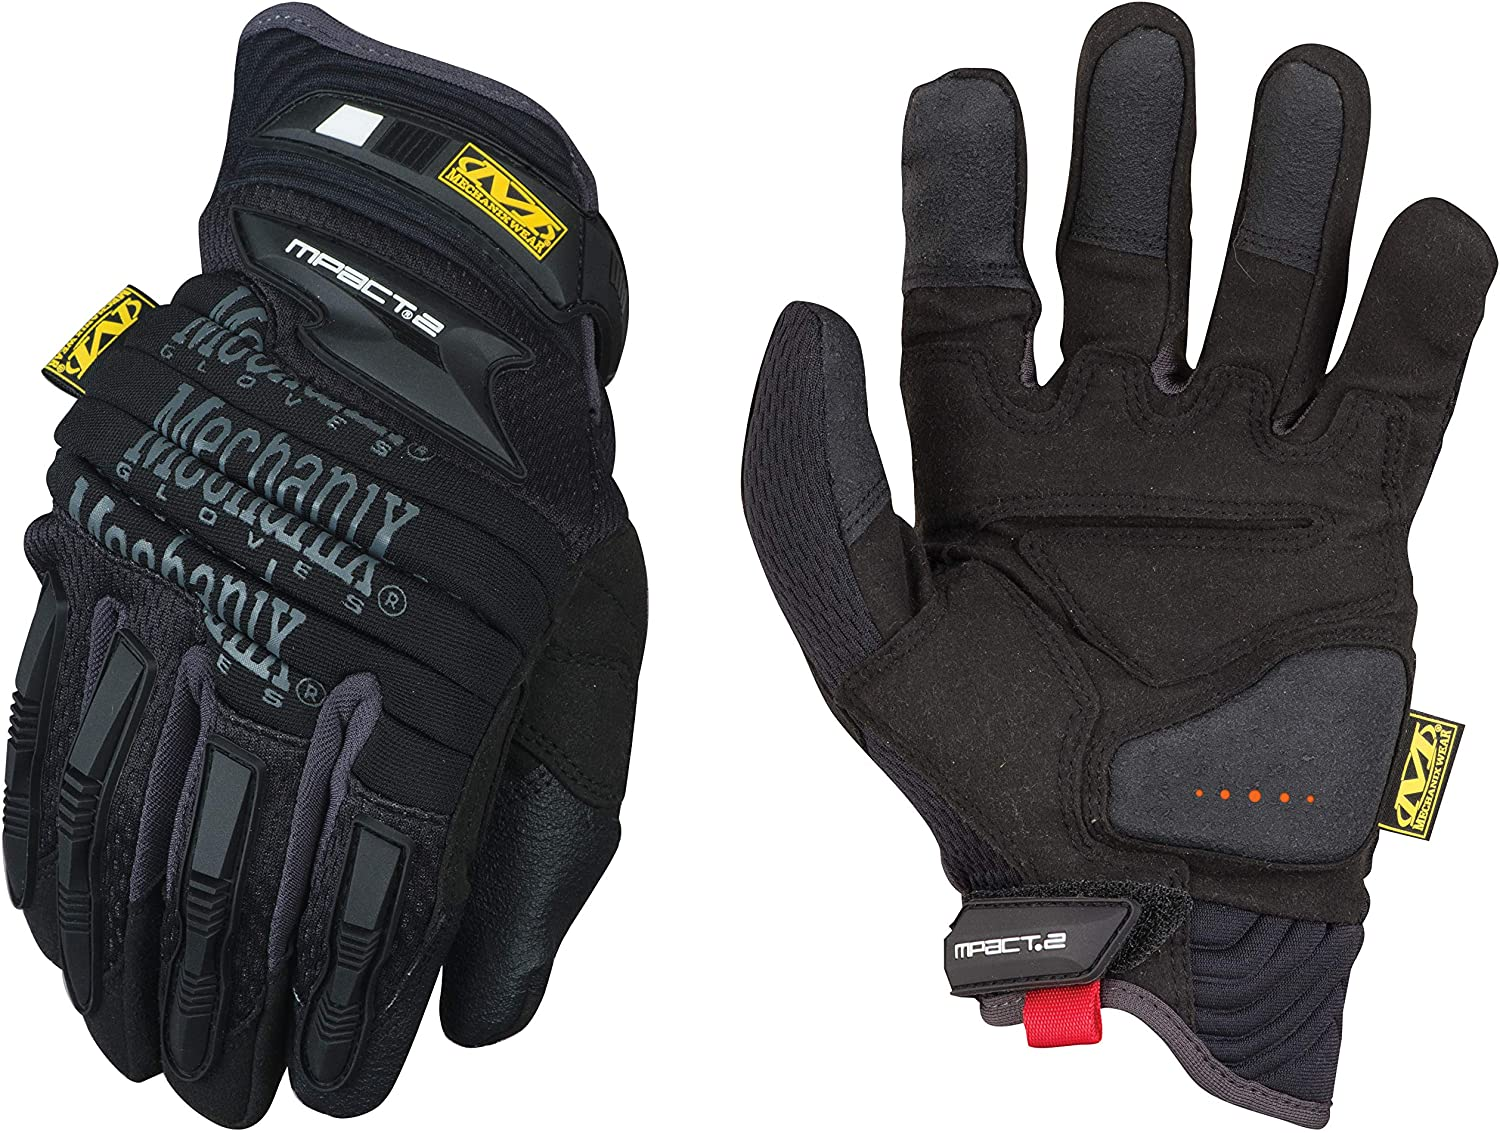 Mechanix Wear Size 9 Black And Gray M-Pact 2 Synthetic Leather And TrekDry Full Finger Anti-Vibration Gloves With Hook And Loop Cuff (MP2-05-009), Medium